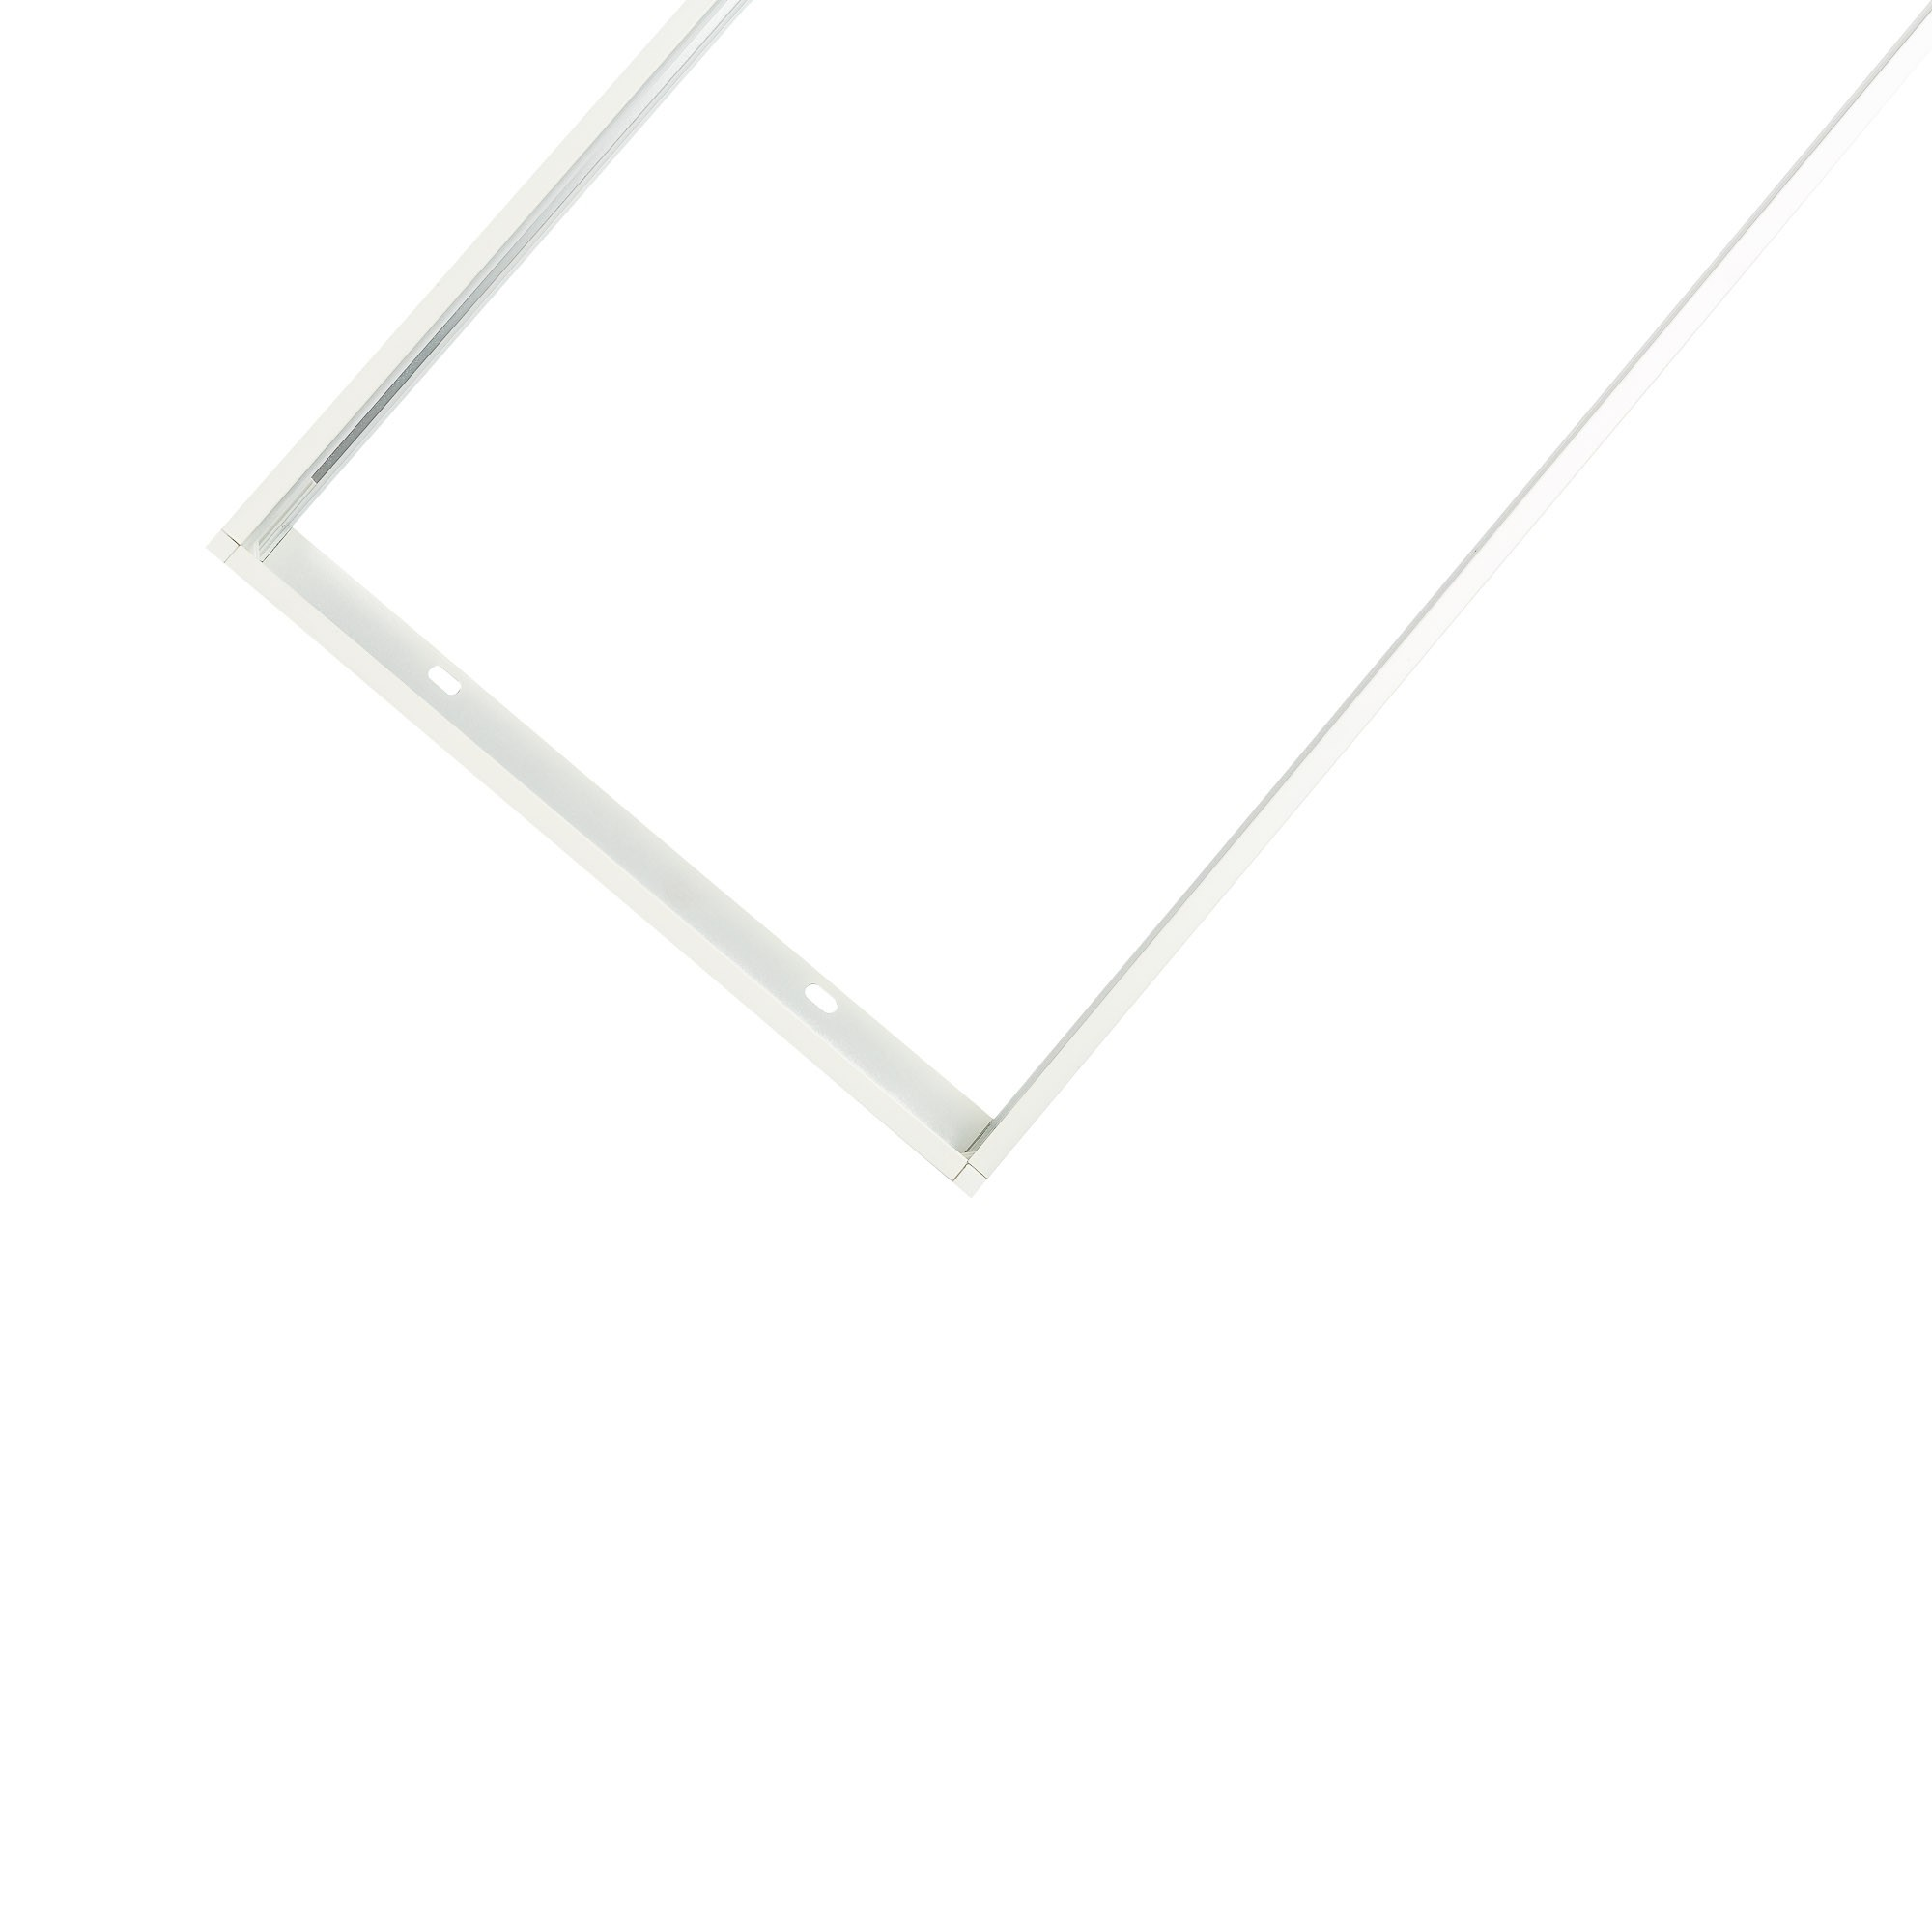 LED SURFACE MOUNT KIT TO SUIT 1200 X 300 LED LIGHT PANEL